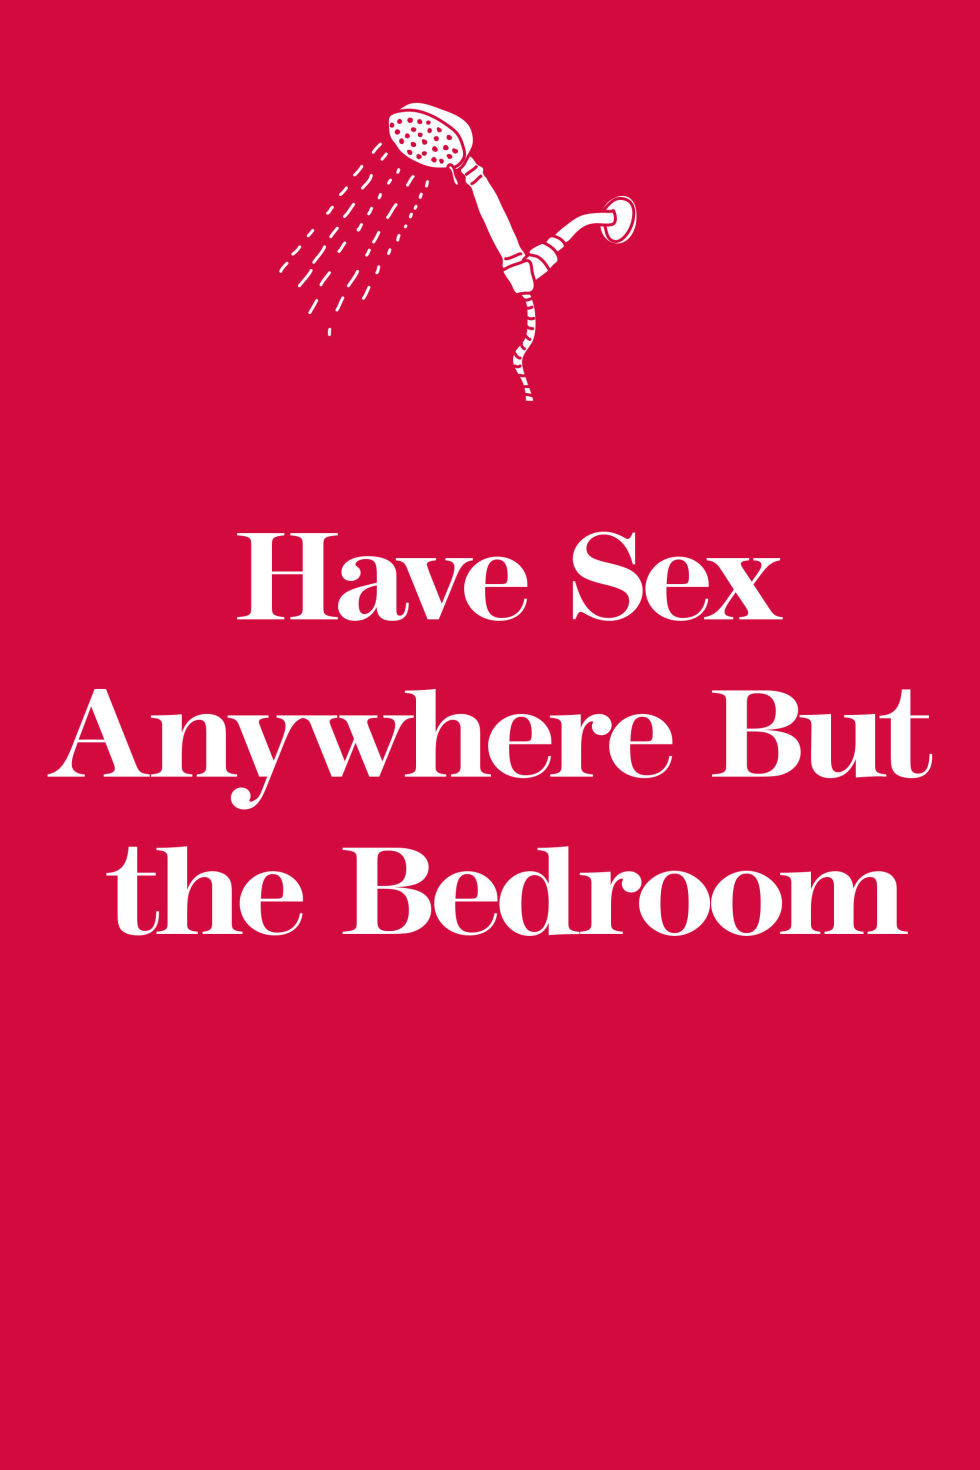 New To Spice Up The Bedroom 20 Easy Ways To Spice Up Your Sex Life Have A Better Love Life Now